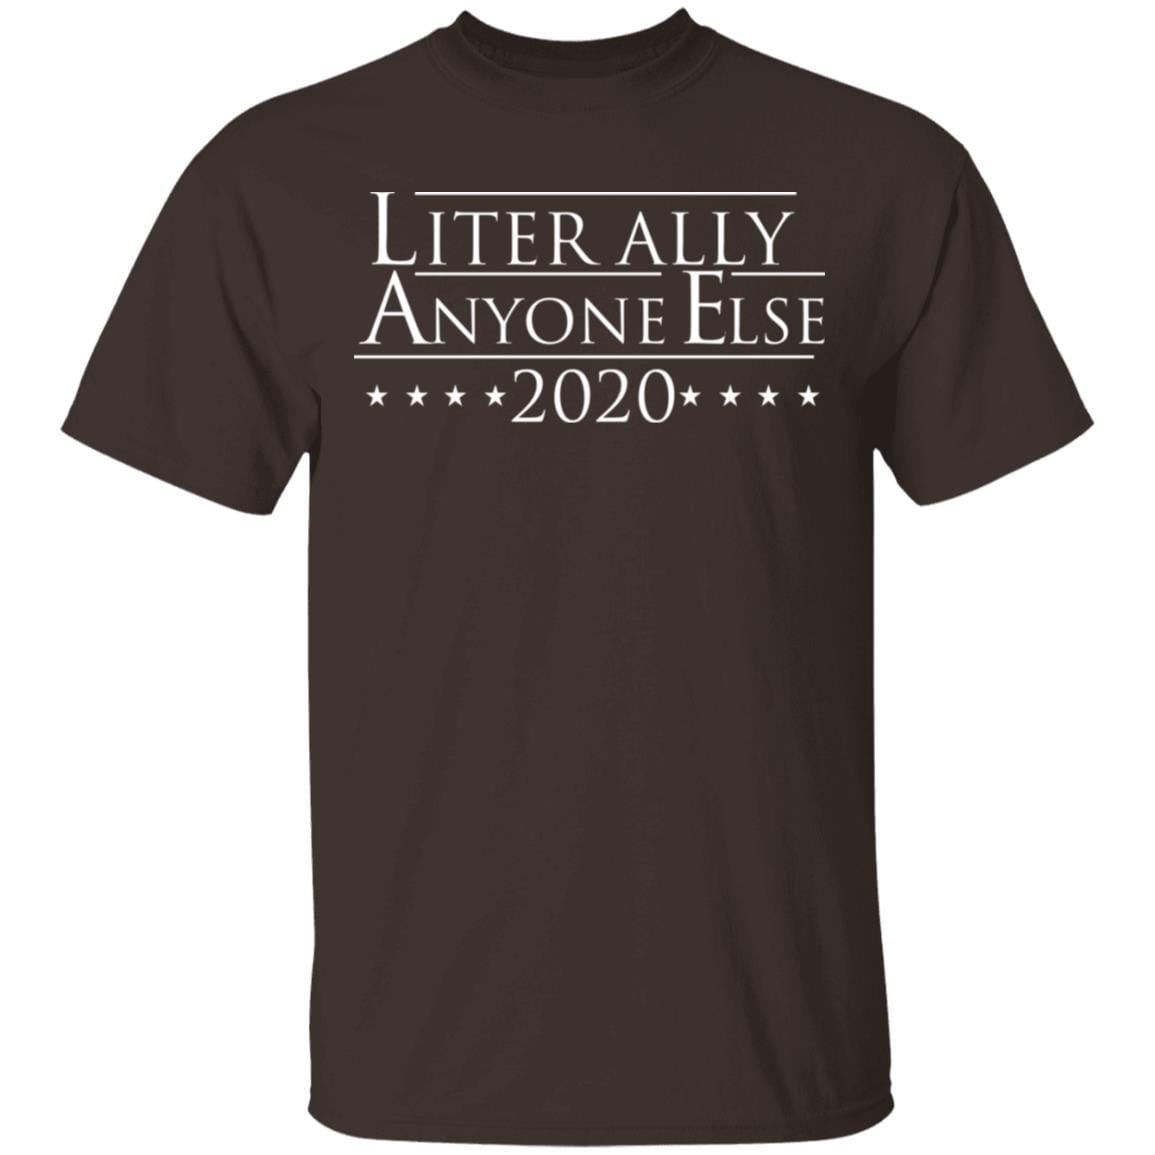 Literally Anyone Else 2020 T-Shirts, Hoodies 1049-9956-88765989-48152 - Tee Ript